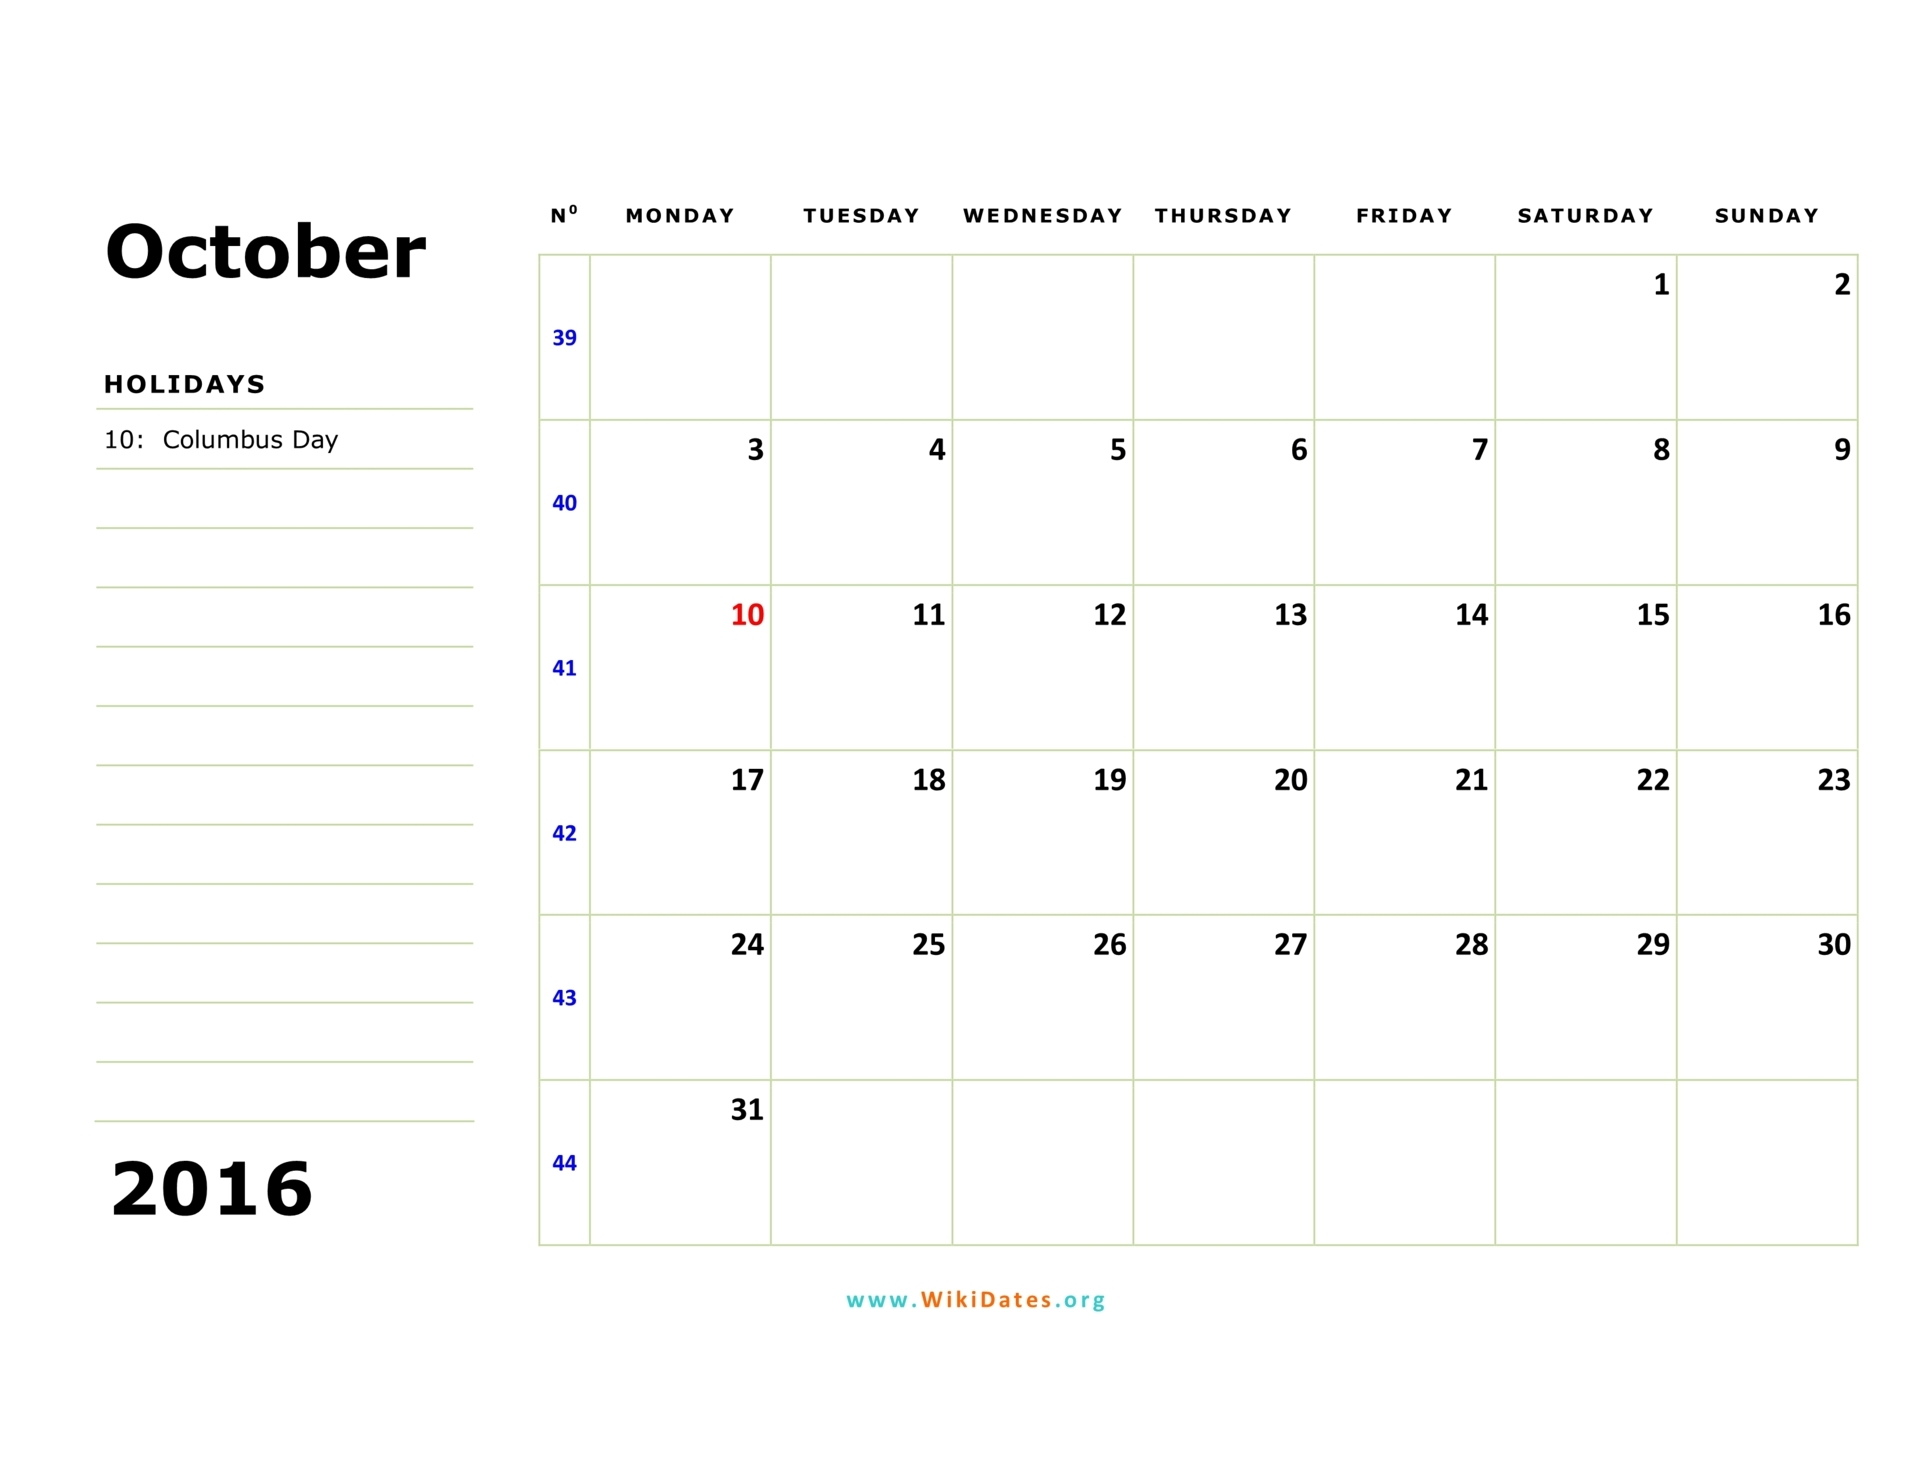 October 2016 Calendar Wikidates Org